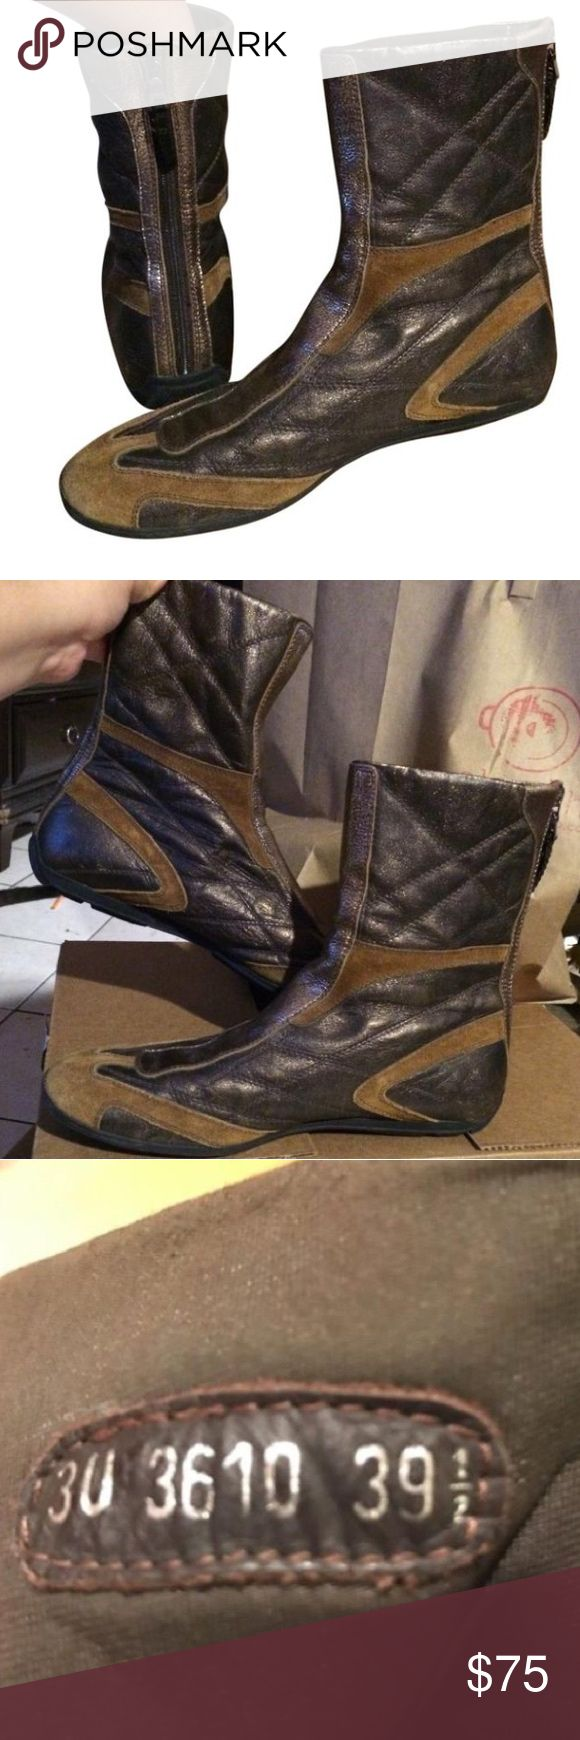 PRADA brown and gold boots PRADA brown suede and gold boots. In great condition. EU size 39.5. No box.  TAGS: UGG KORS UGGS Prada Shoes